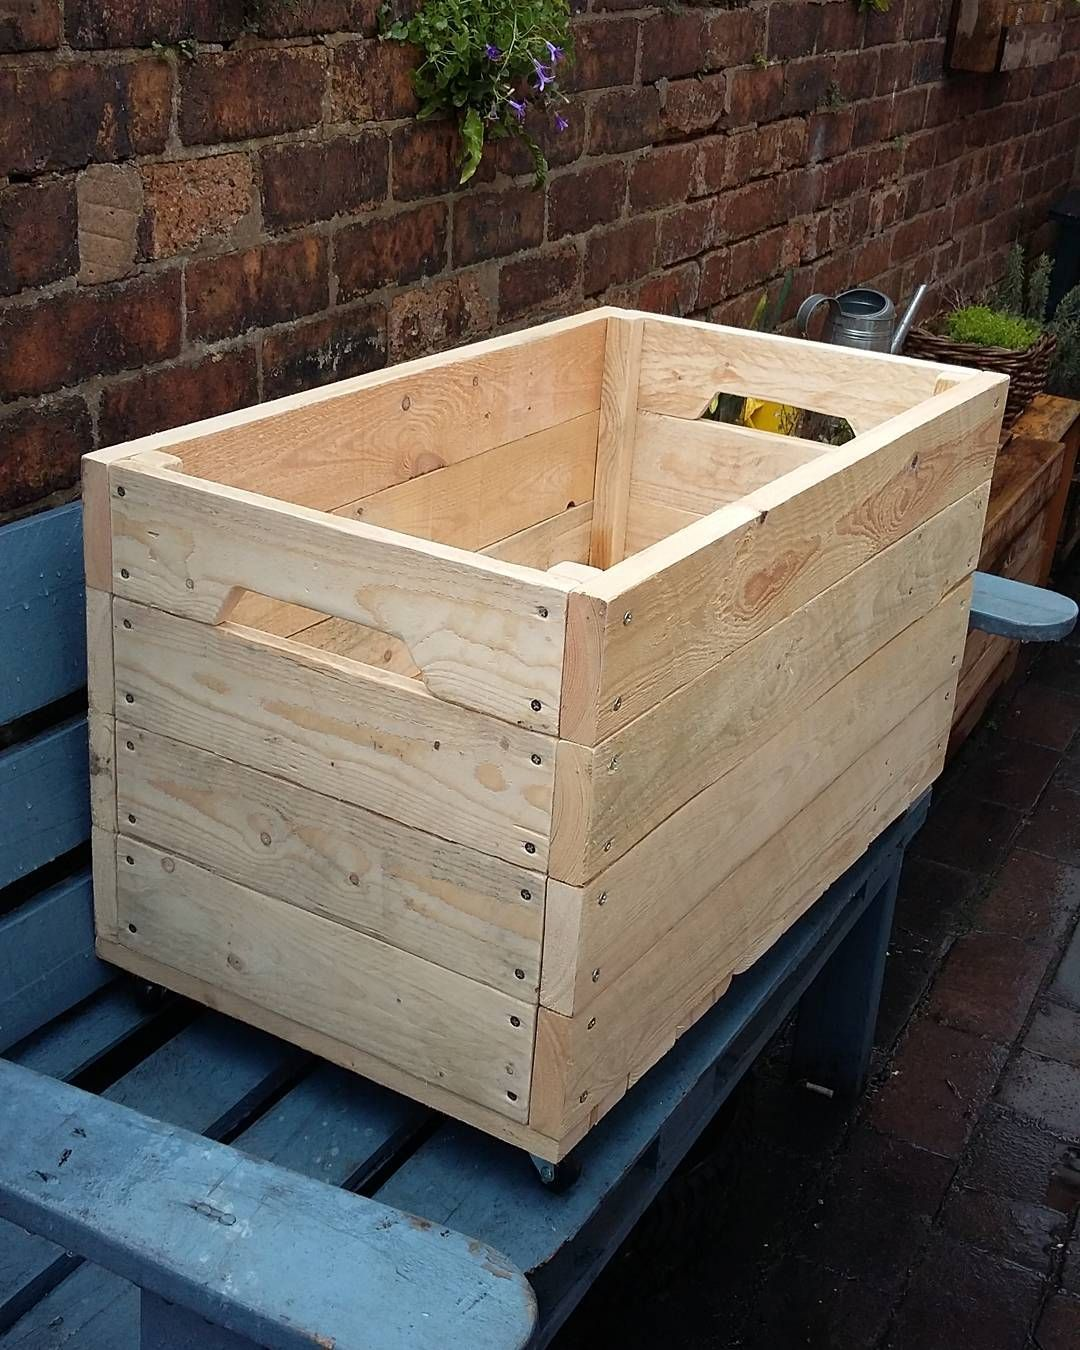 Palletcreationsuk On Instagram Xxl Toybox On Wheels Made Out Of Pallets Pallet Creations Wooden Pallet Projects Woodworking Projects Diy Pallet Creations